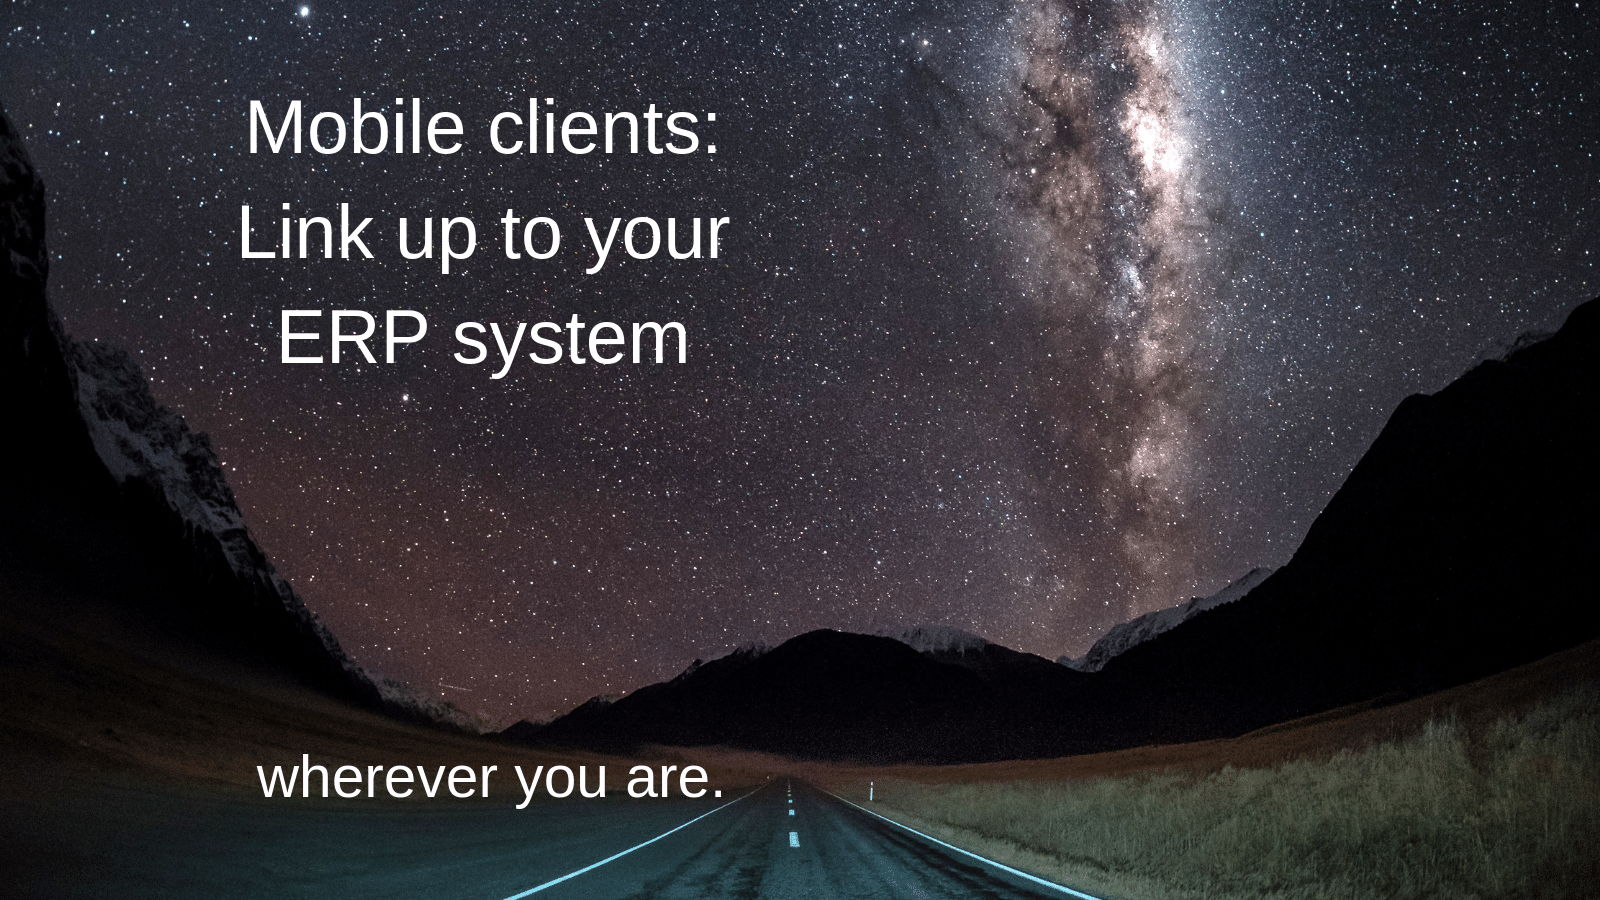 Mobile clients: Link up to your ERP system - wherever you are. (Image: driving in the mountains beneath the stars)